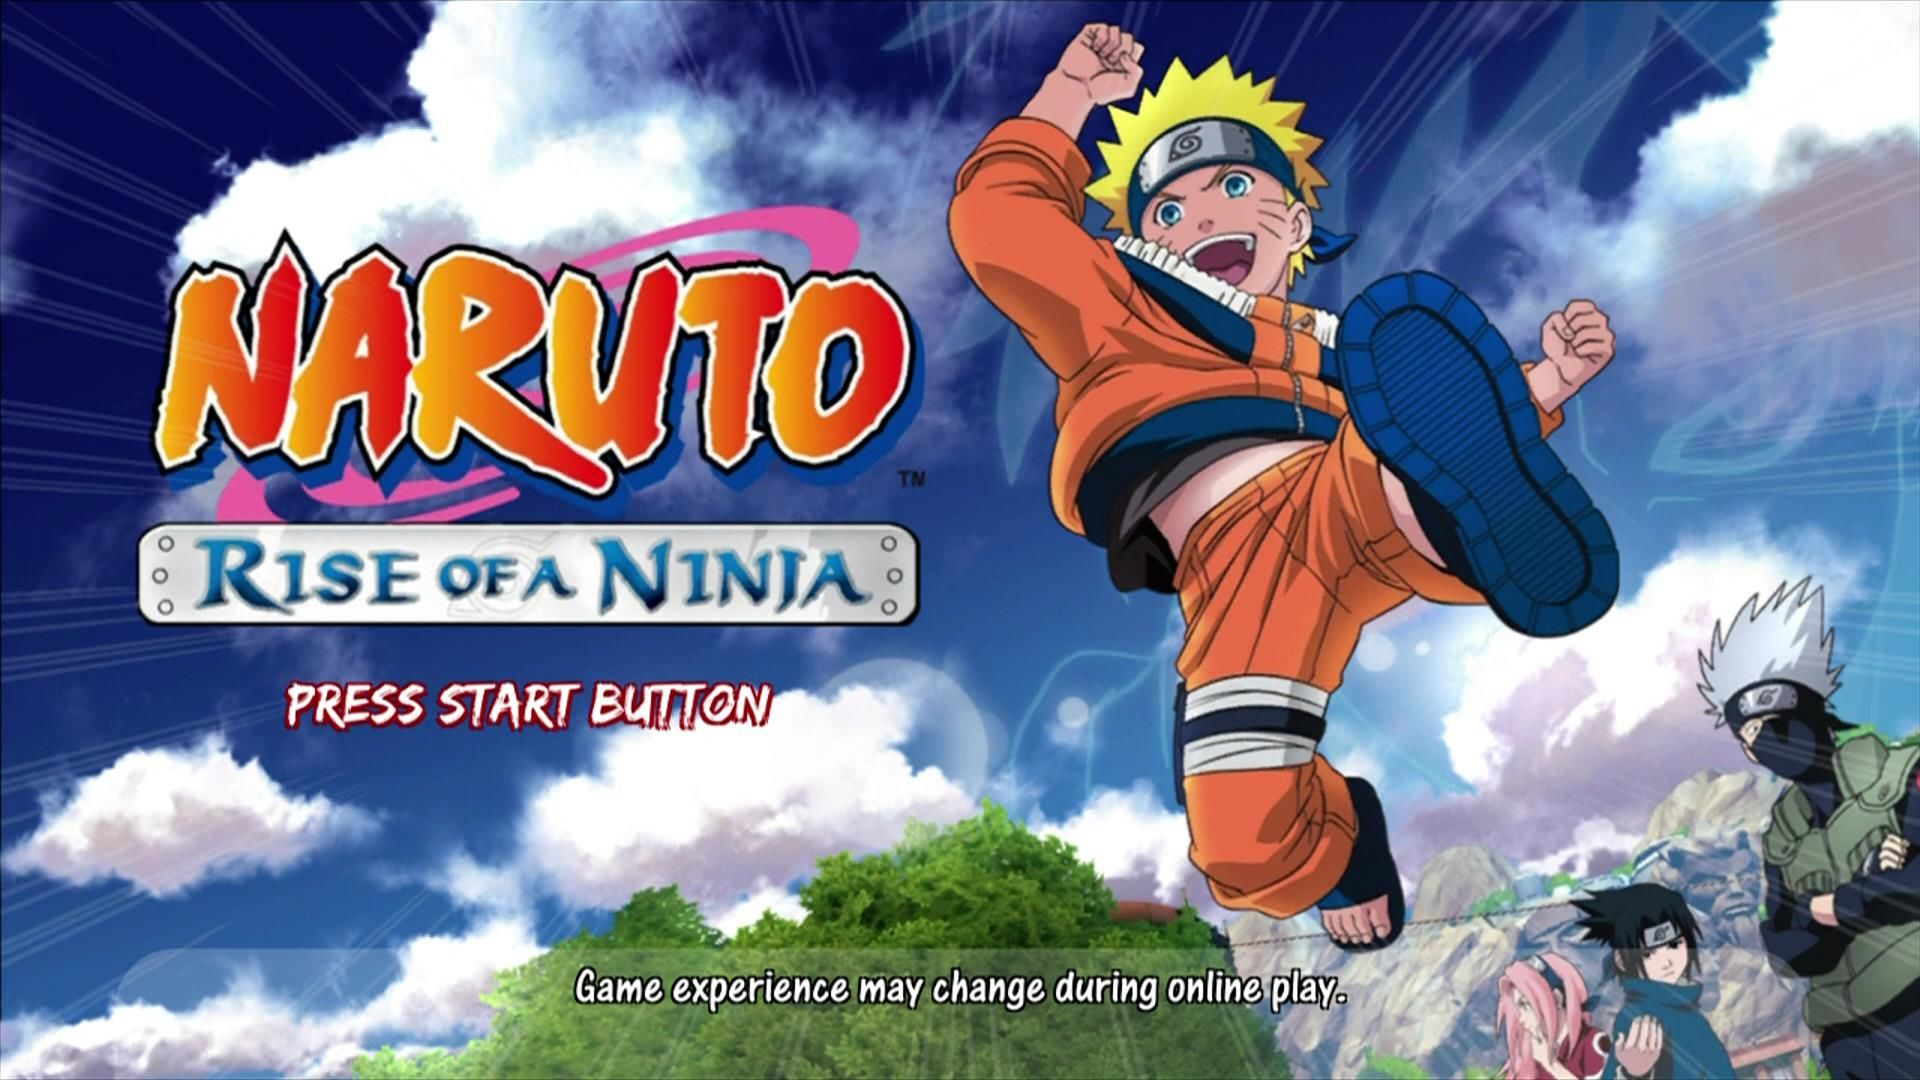 Naruto: Rise of a Ninja Xbox 360 Start screen